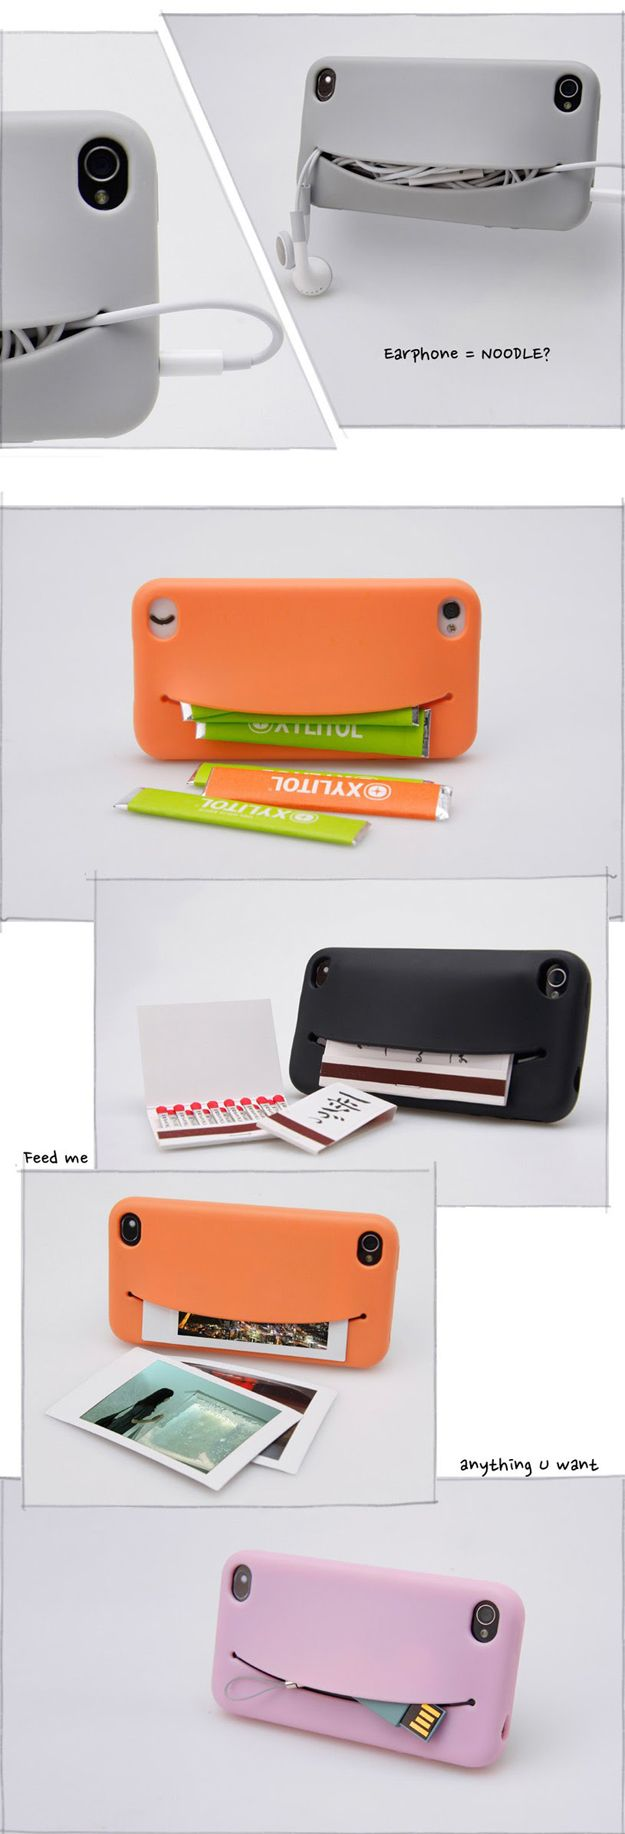 FeedMe: storage iPhone case   Probably not that secure, and would be bulky when